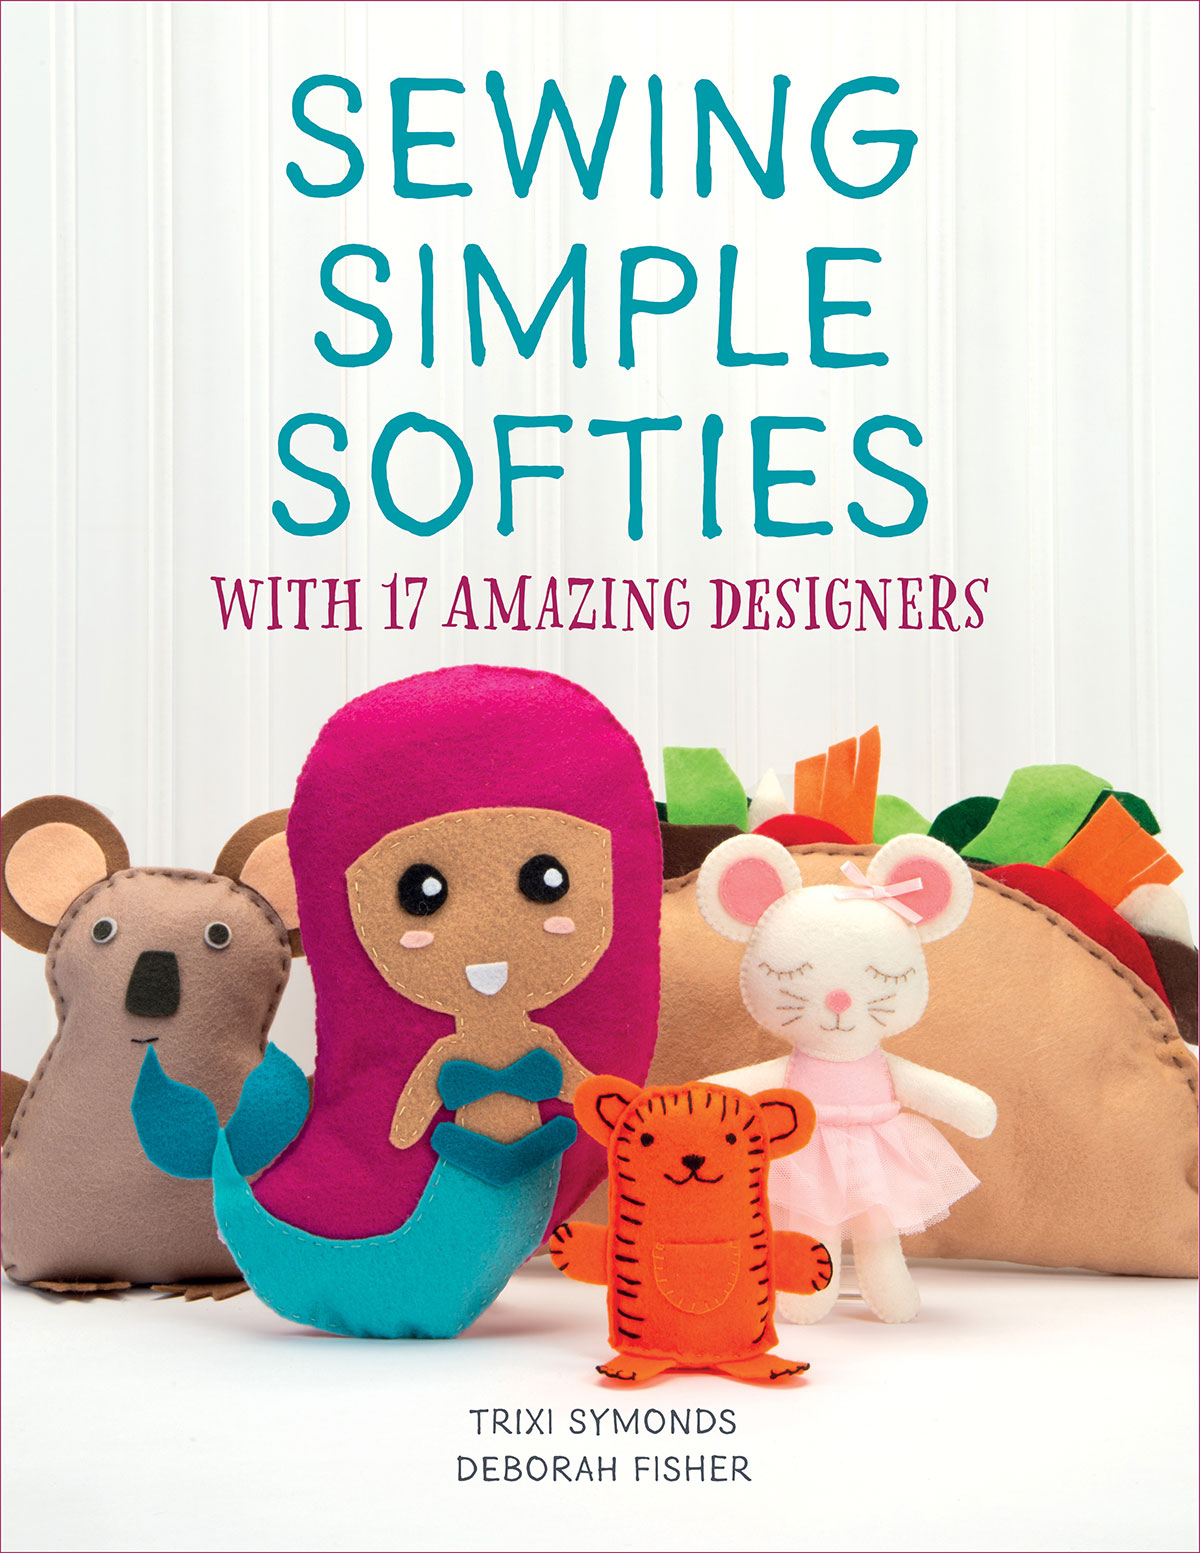 Sewing Simple Softies book